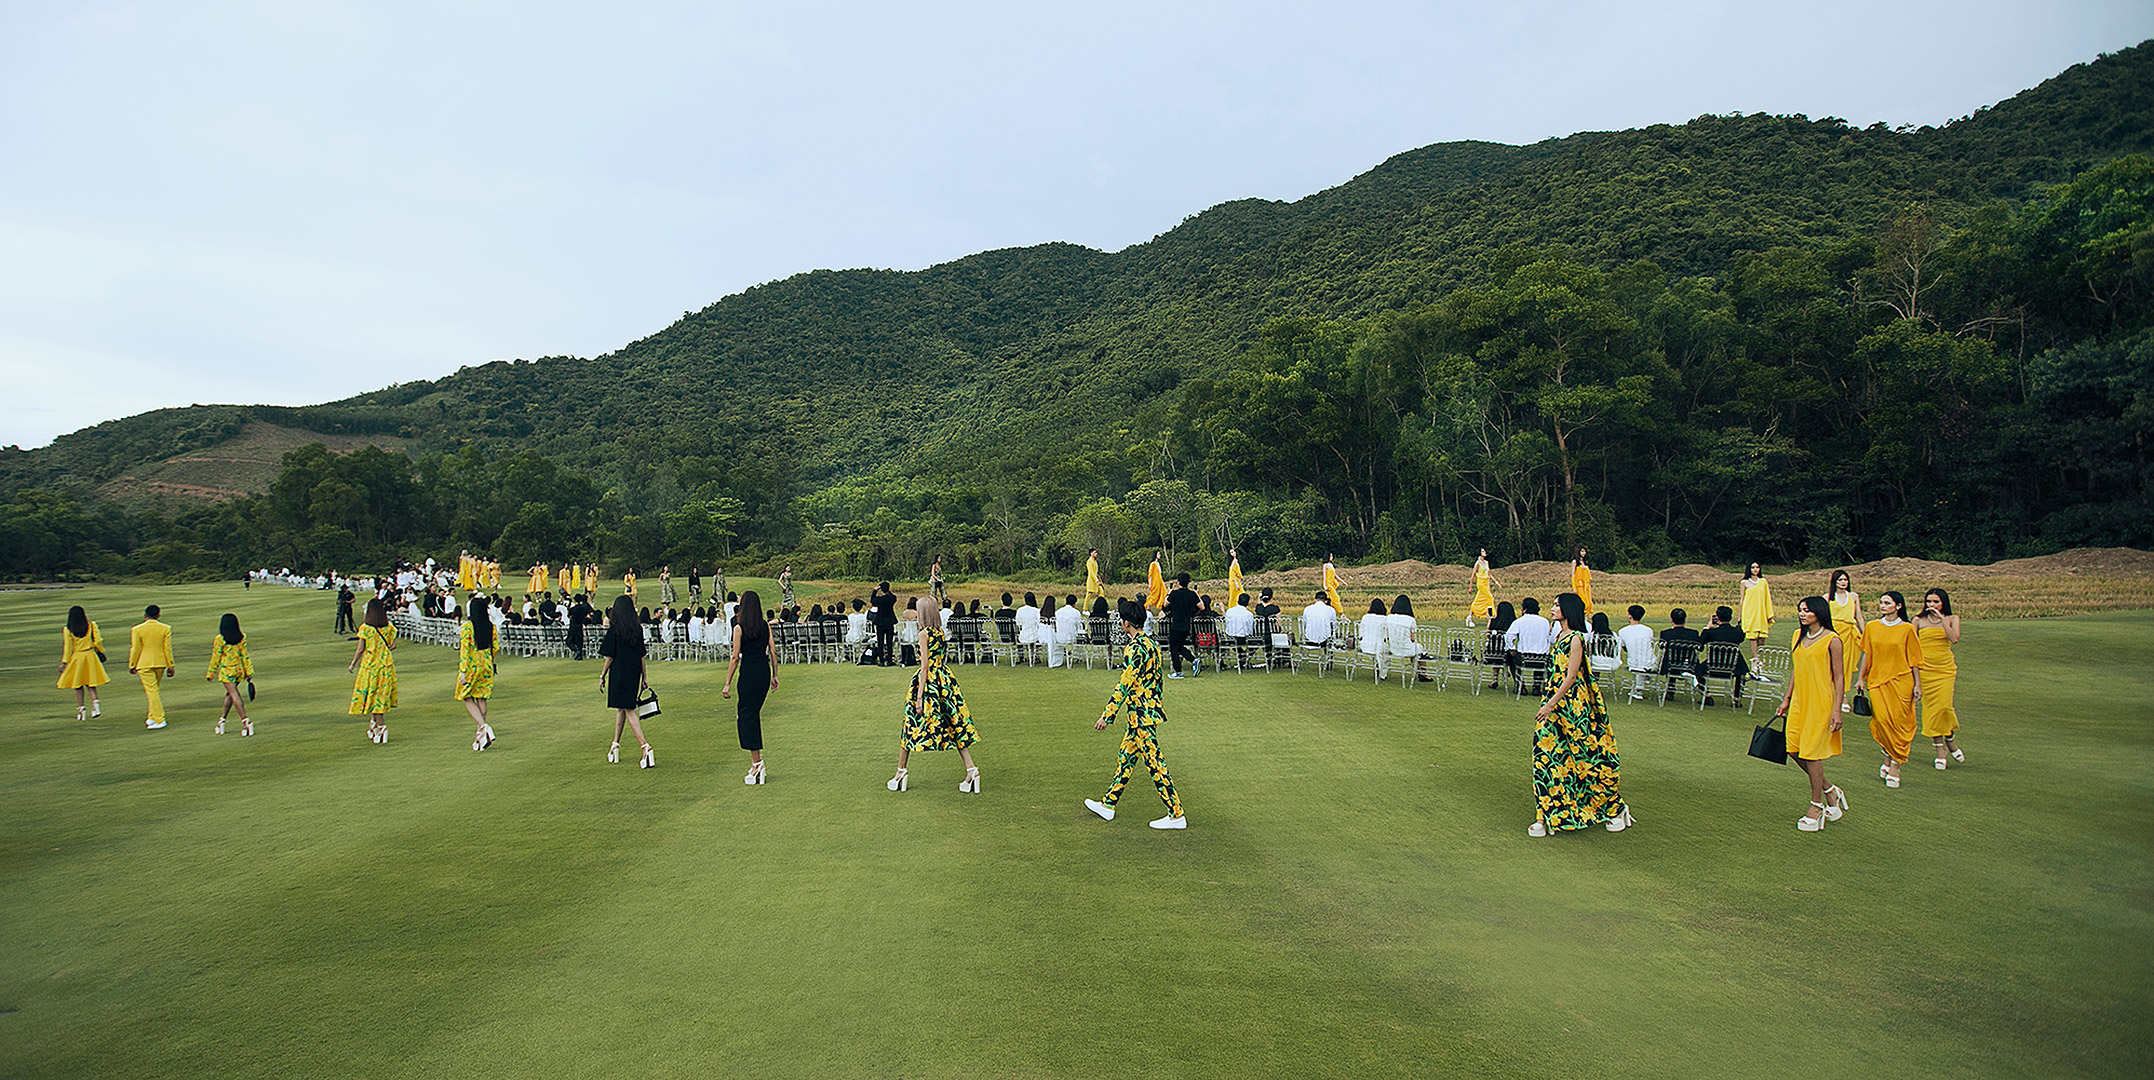 The first fashion show in Vietnam on a golf course - 1